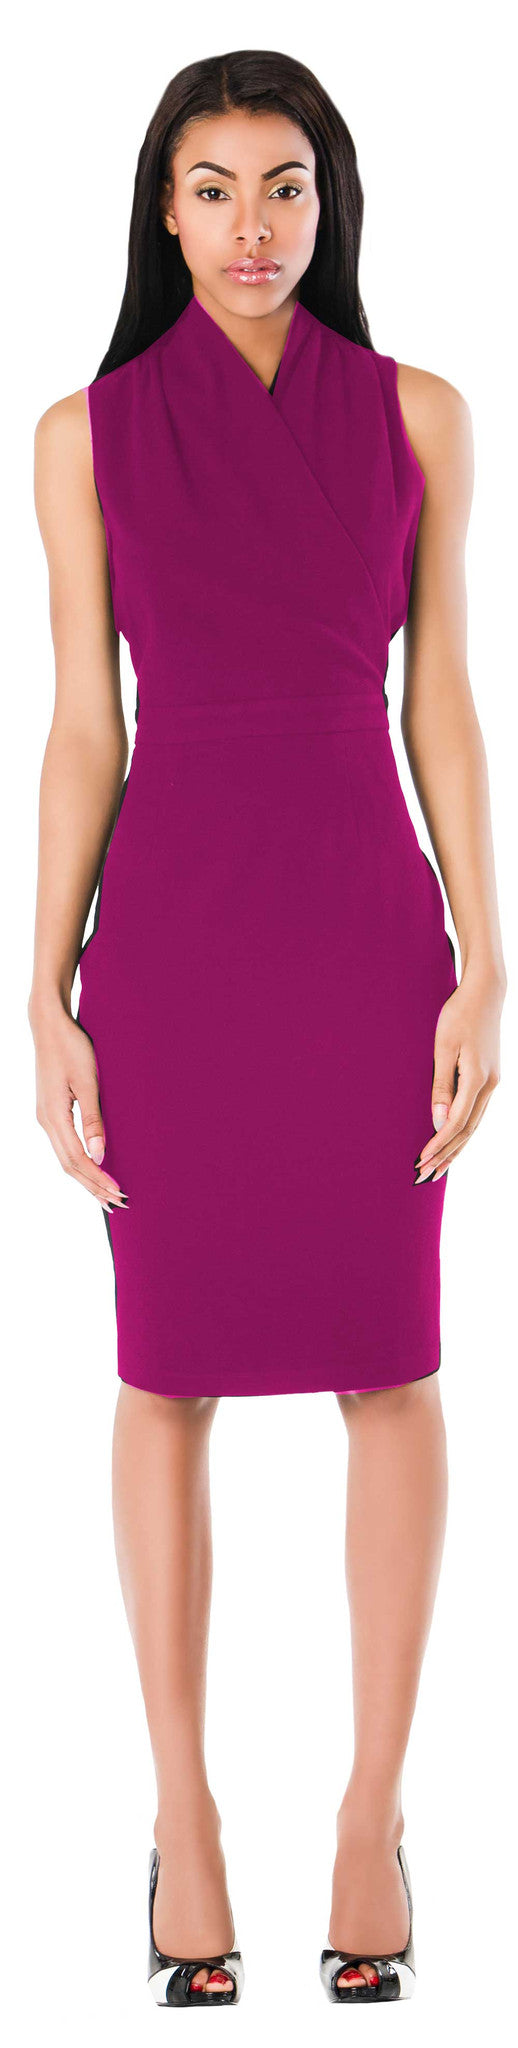 New York Dress/ Cerise Pink